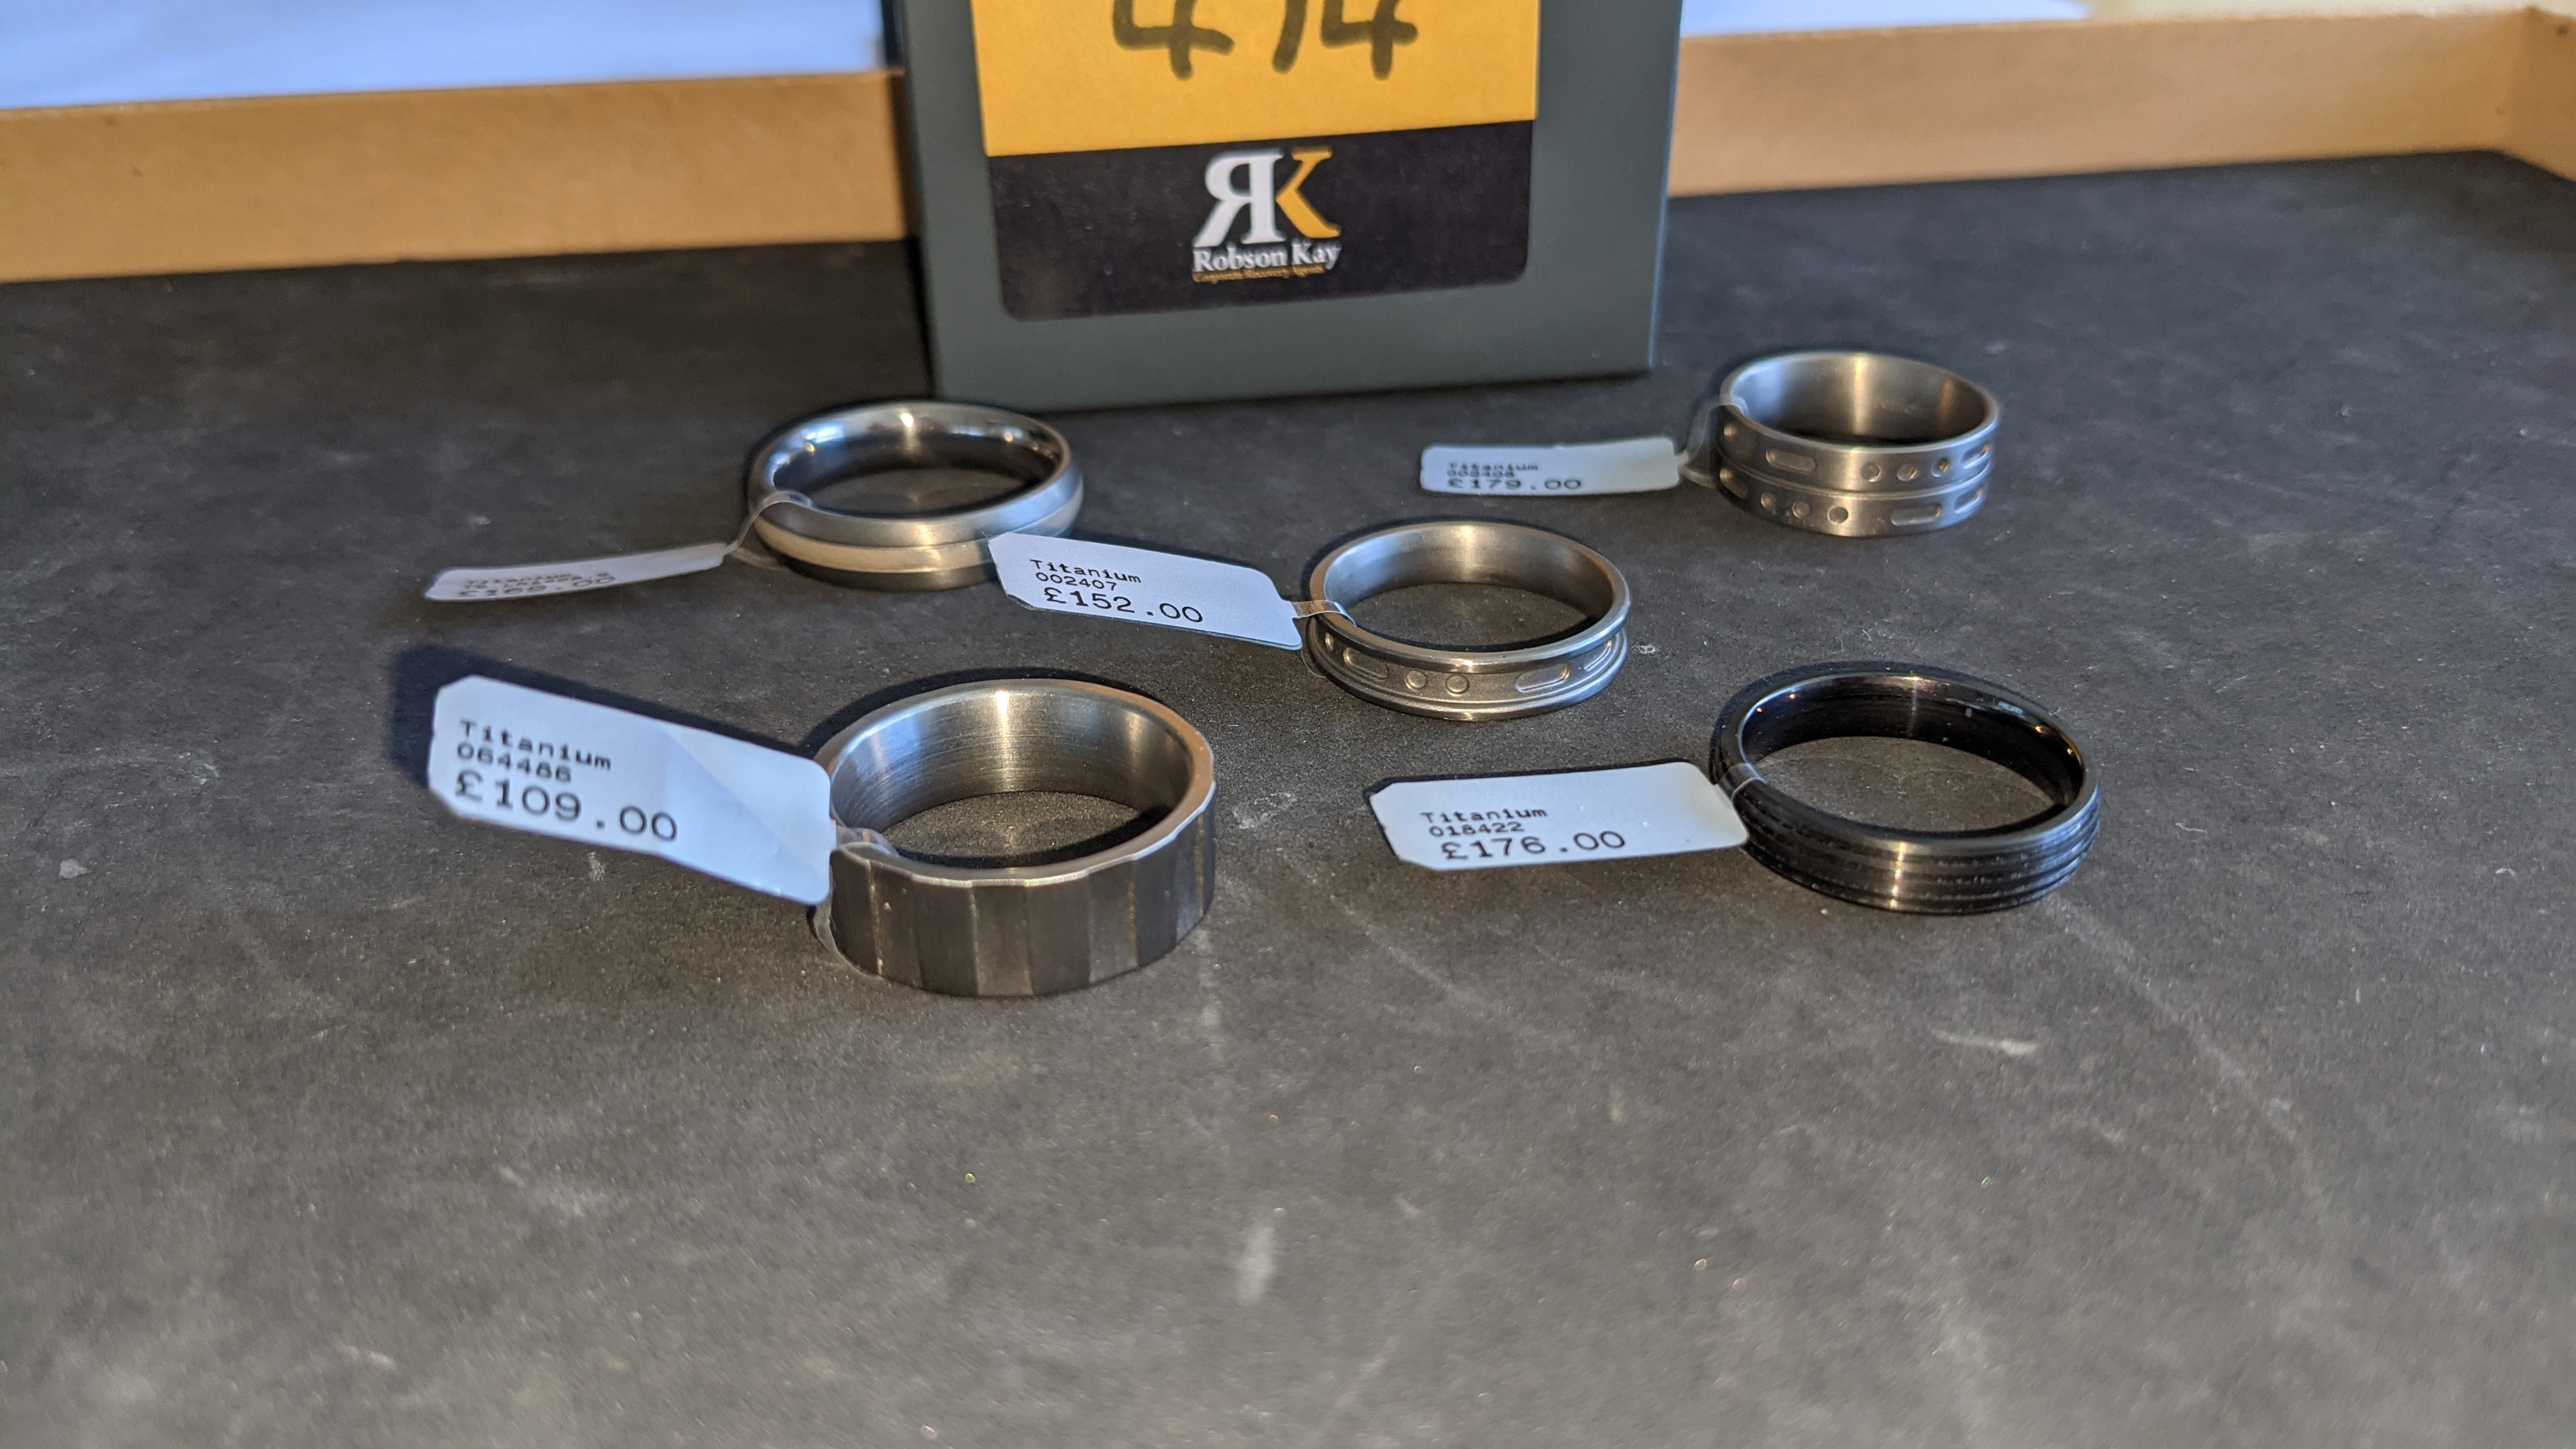 5 off assorted titanium rings with RRP from £109 - £179 per ring. Total RRP is £785 - Image 5 of 13